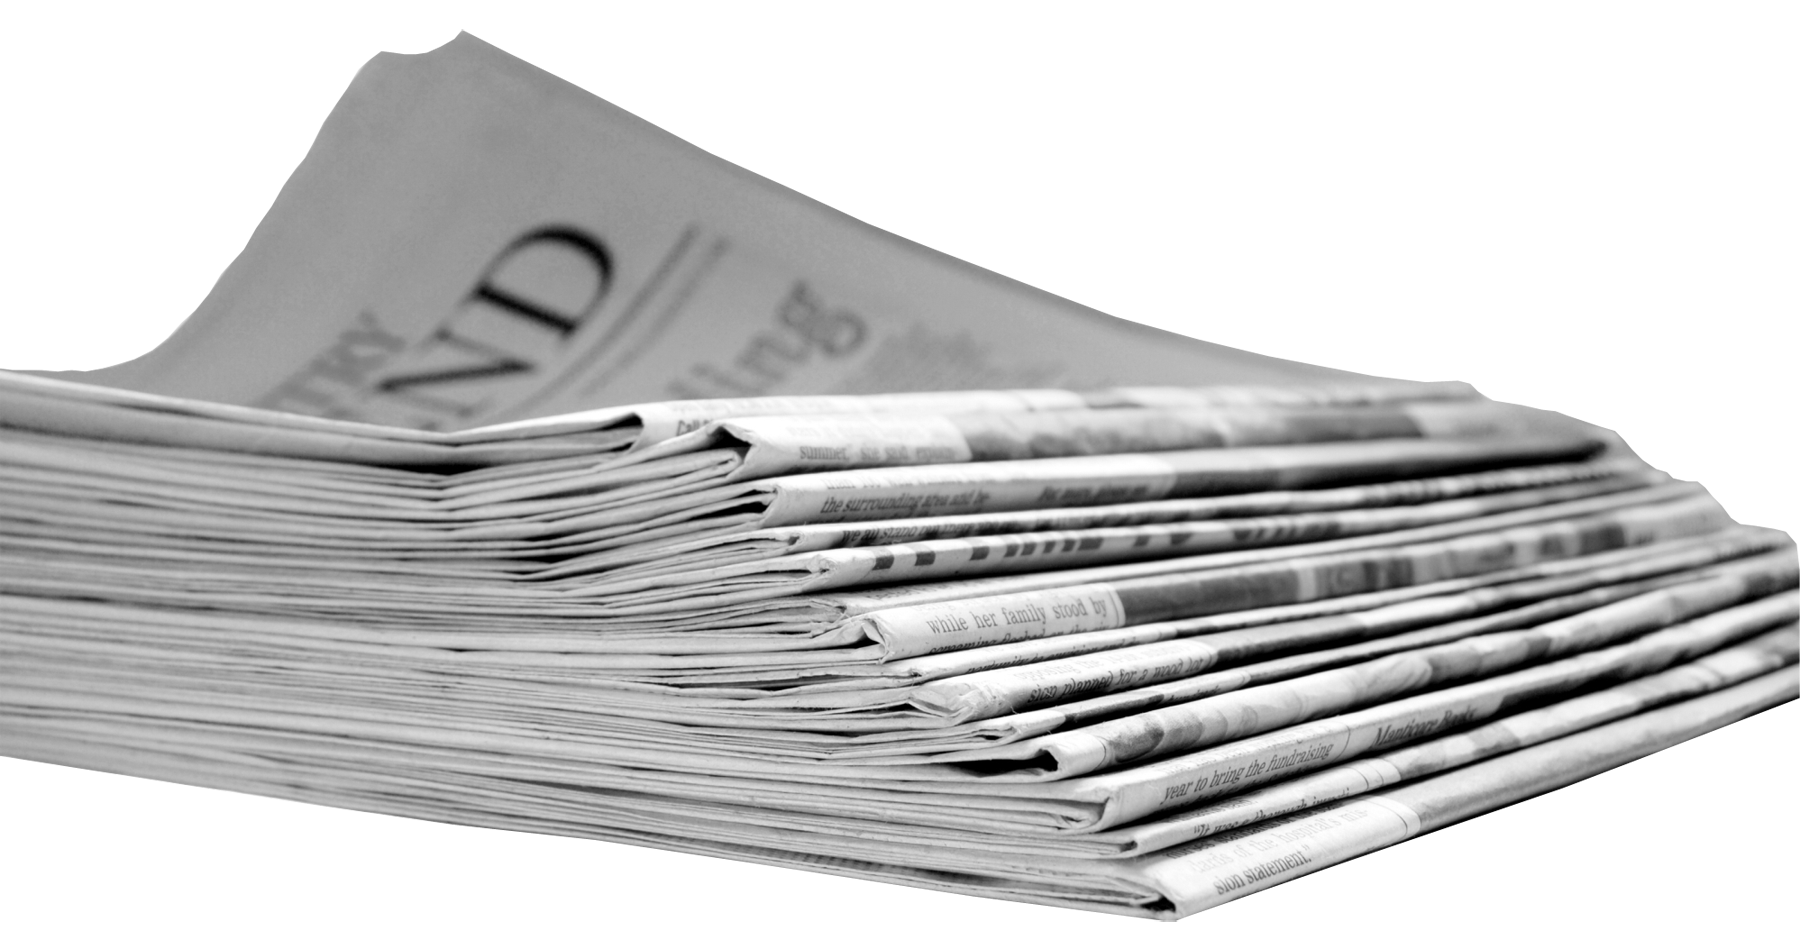 Paper clipart stack papers. Newspaper png transparent images